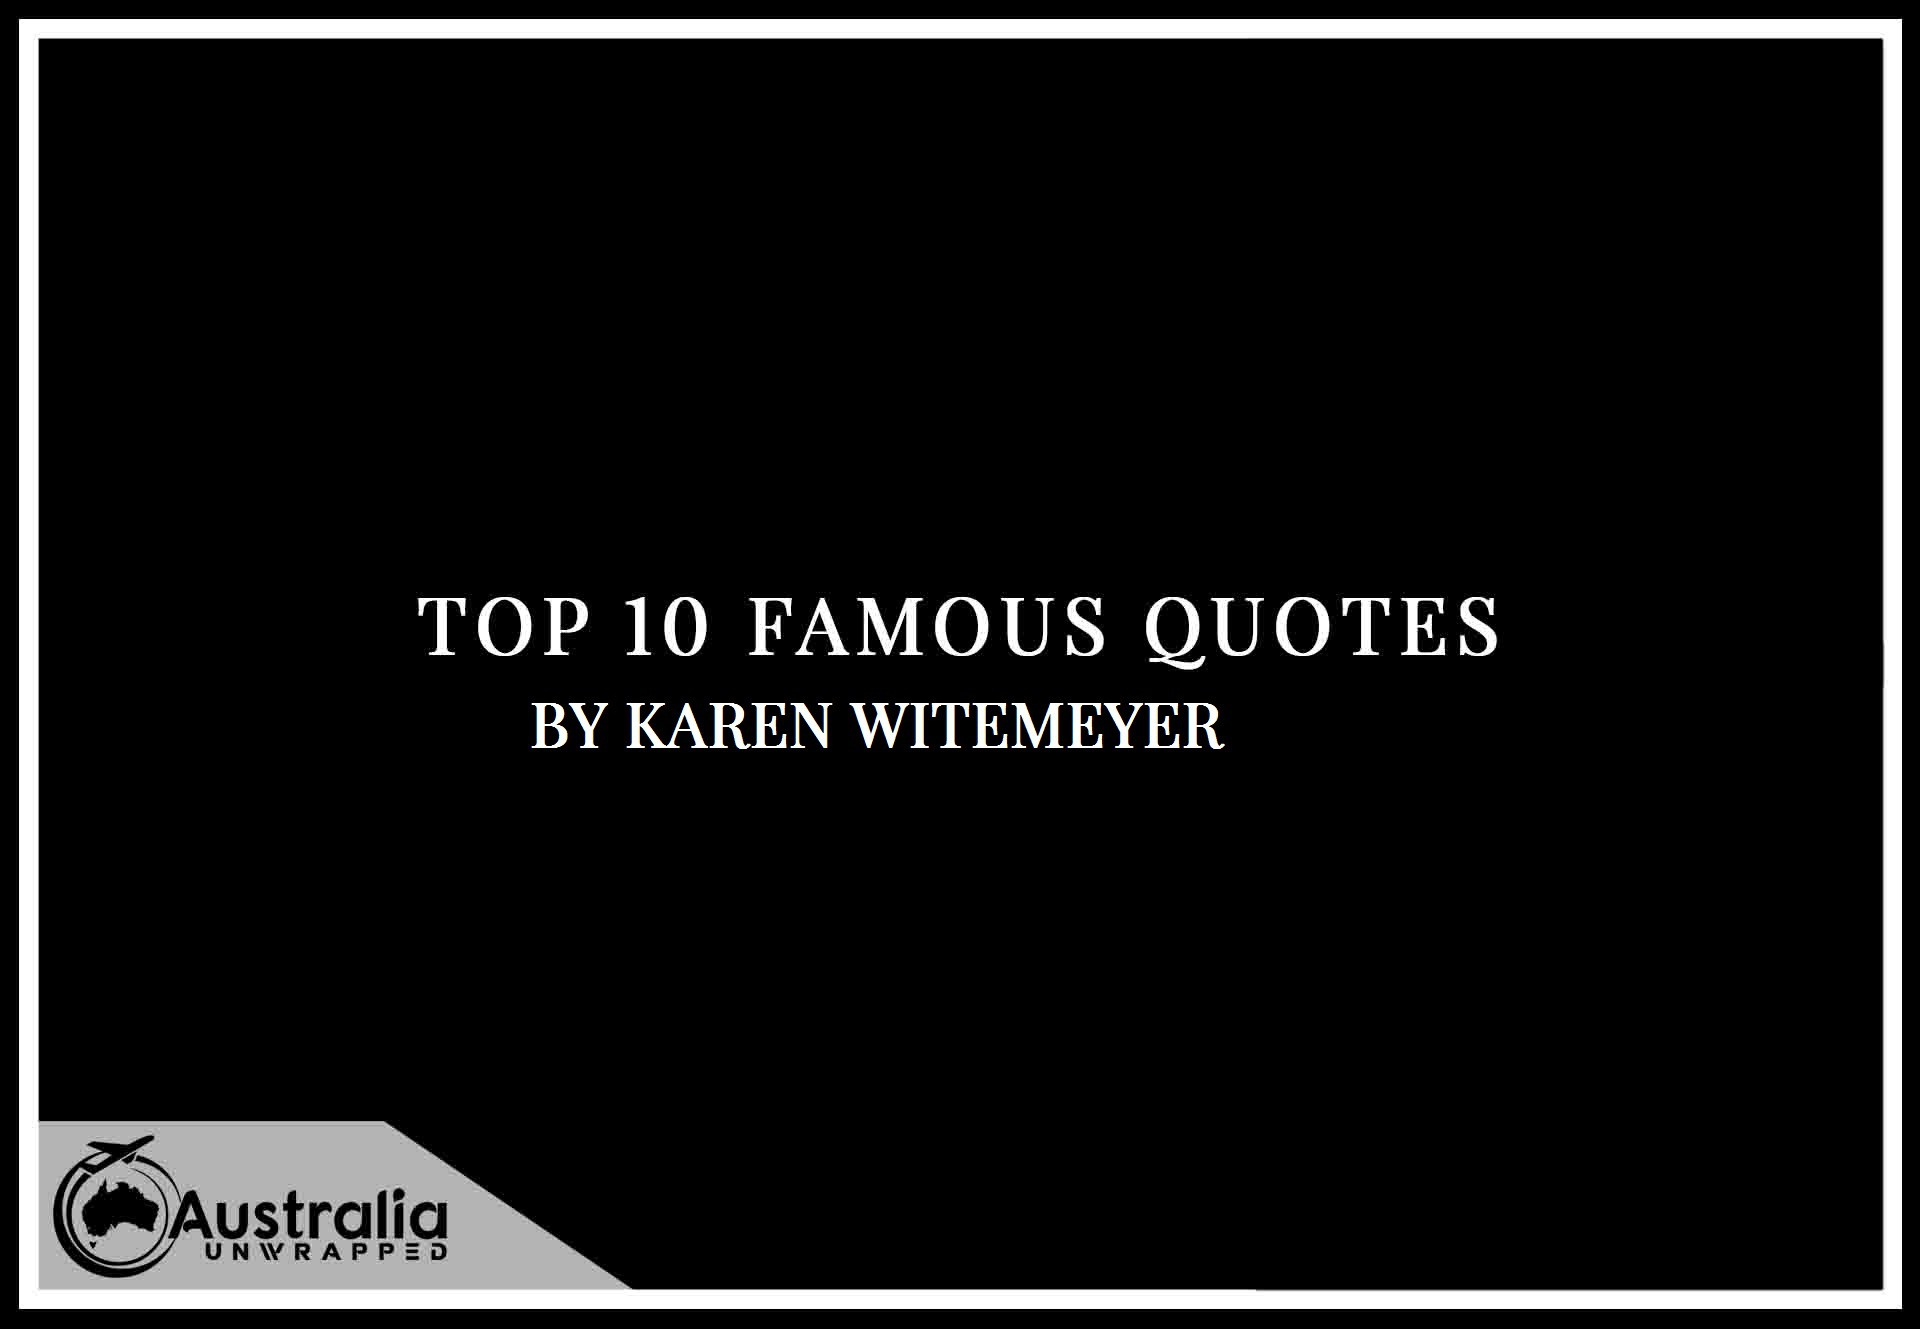 Karen Witemeyer's Top 10 Popular and Famous Quotes